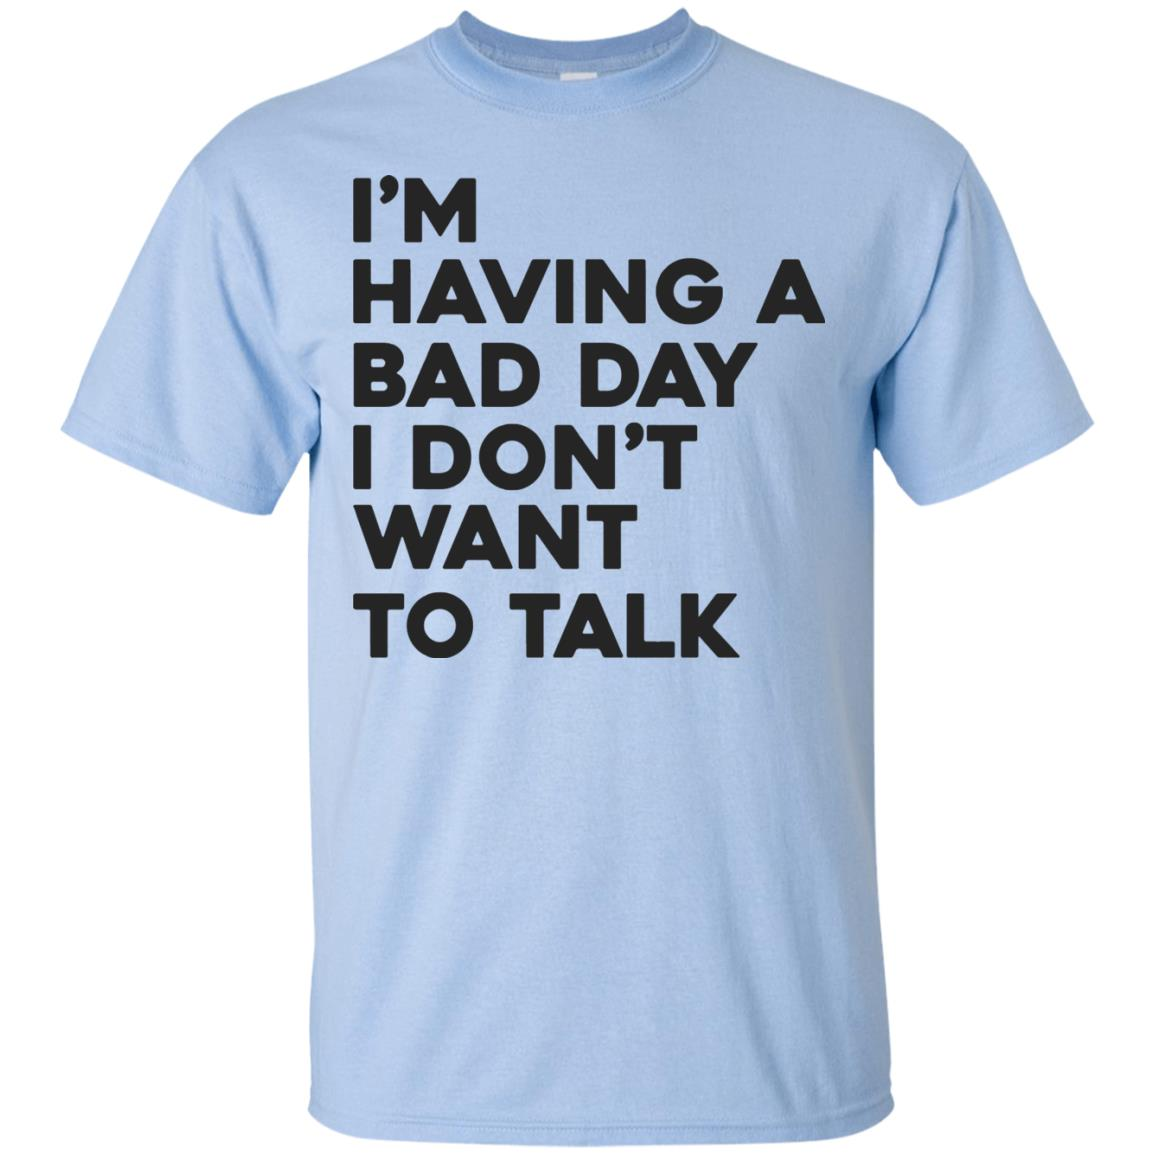 image 237px I'm having a bad day I don't want to talk t shirt, hoodies, tank